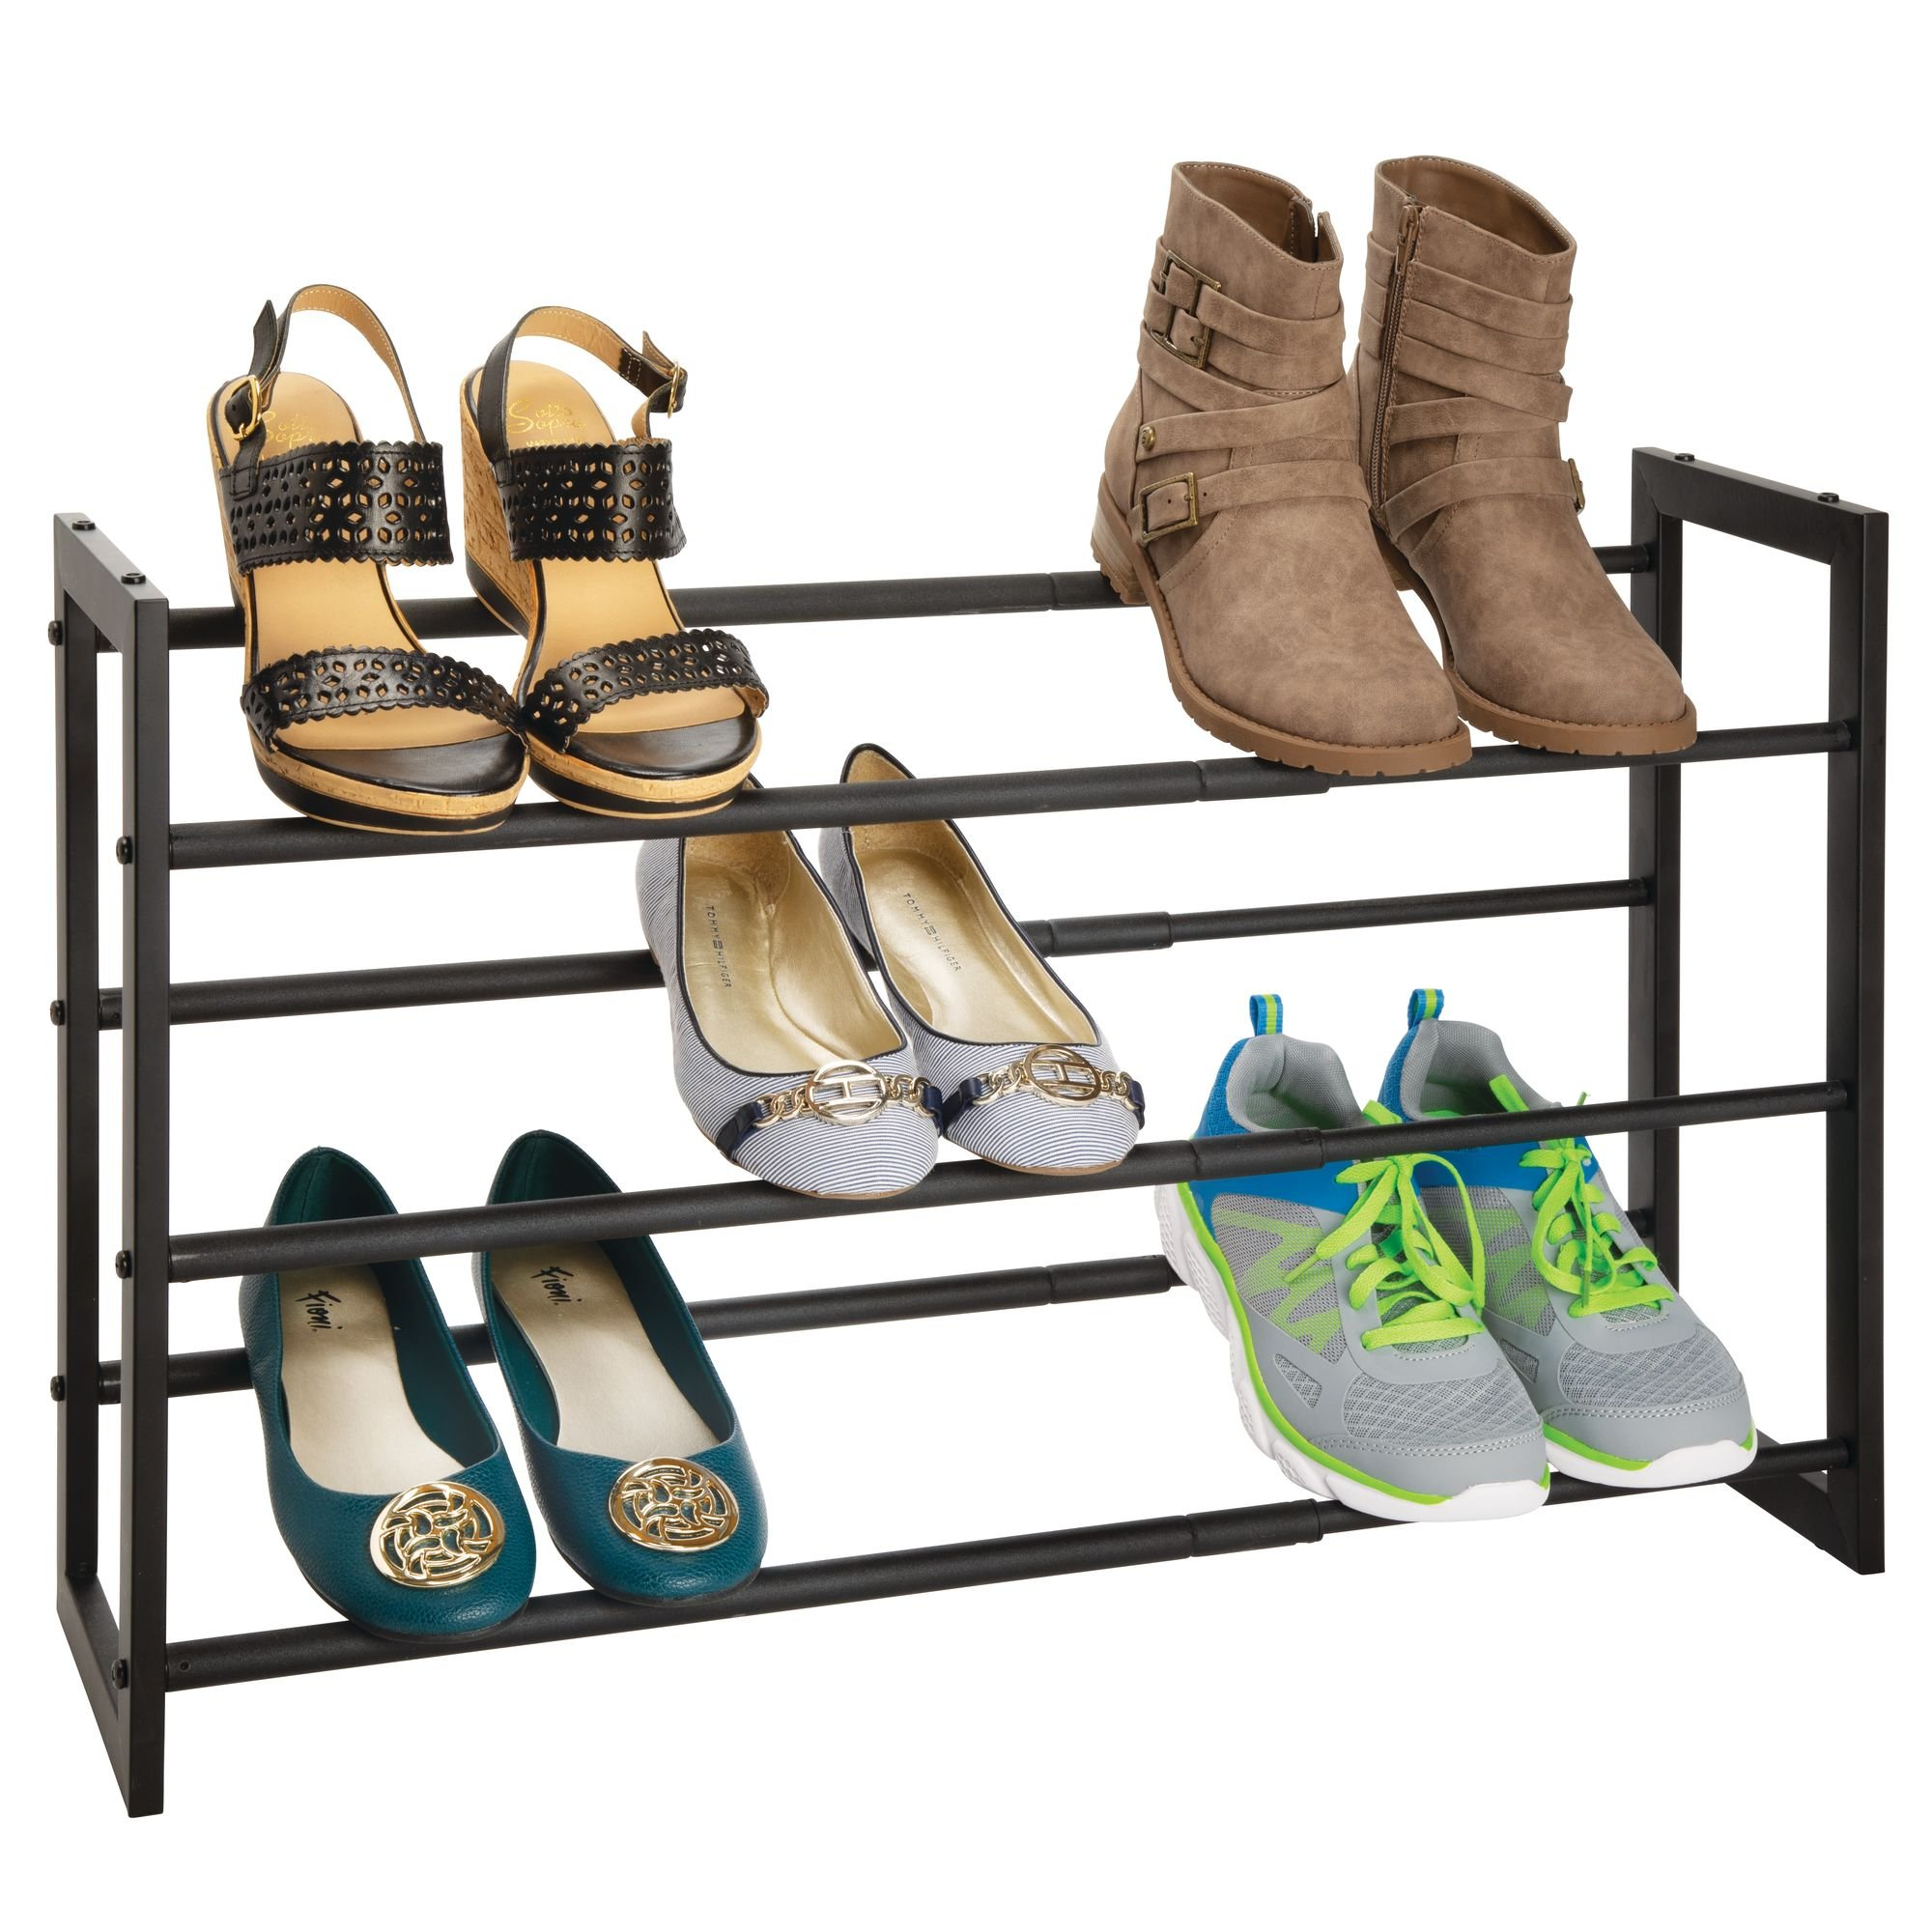 mDesign 3 Tier Adjustable/Expandable Shoe and Boot Storage Organizer Rack - Space-Saving, Angled Vertical Storage - Closets, Entryways, Mudrooms, Bedrooms, Garages - Solid Steel, Black